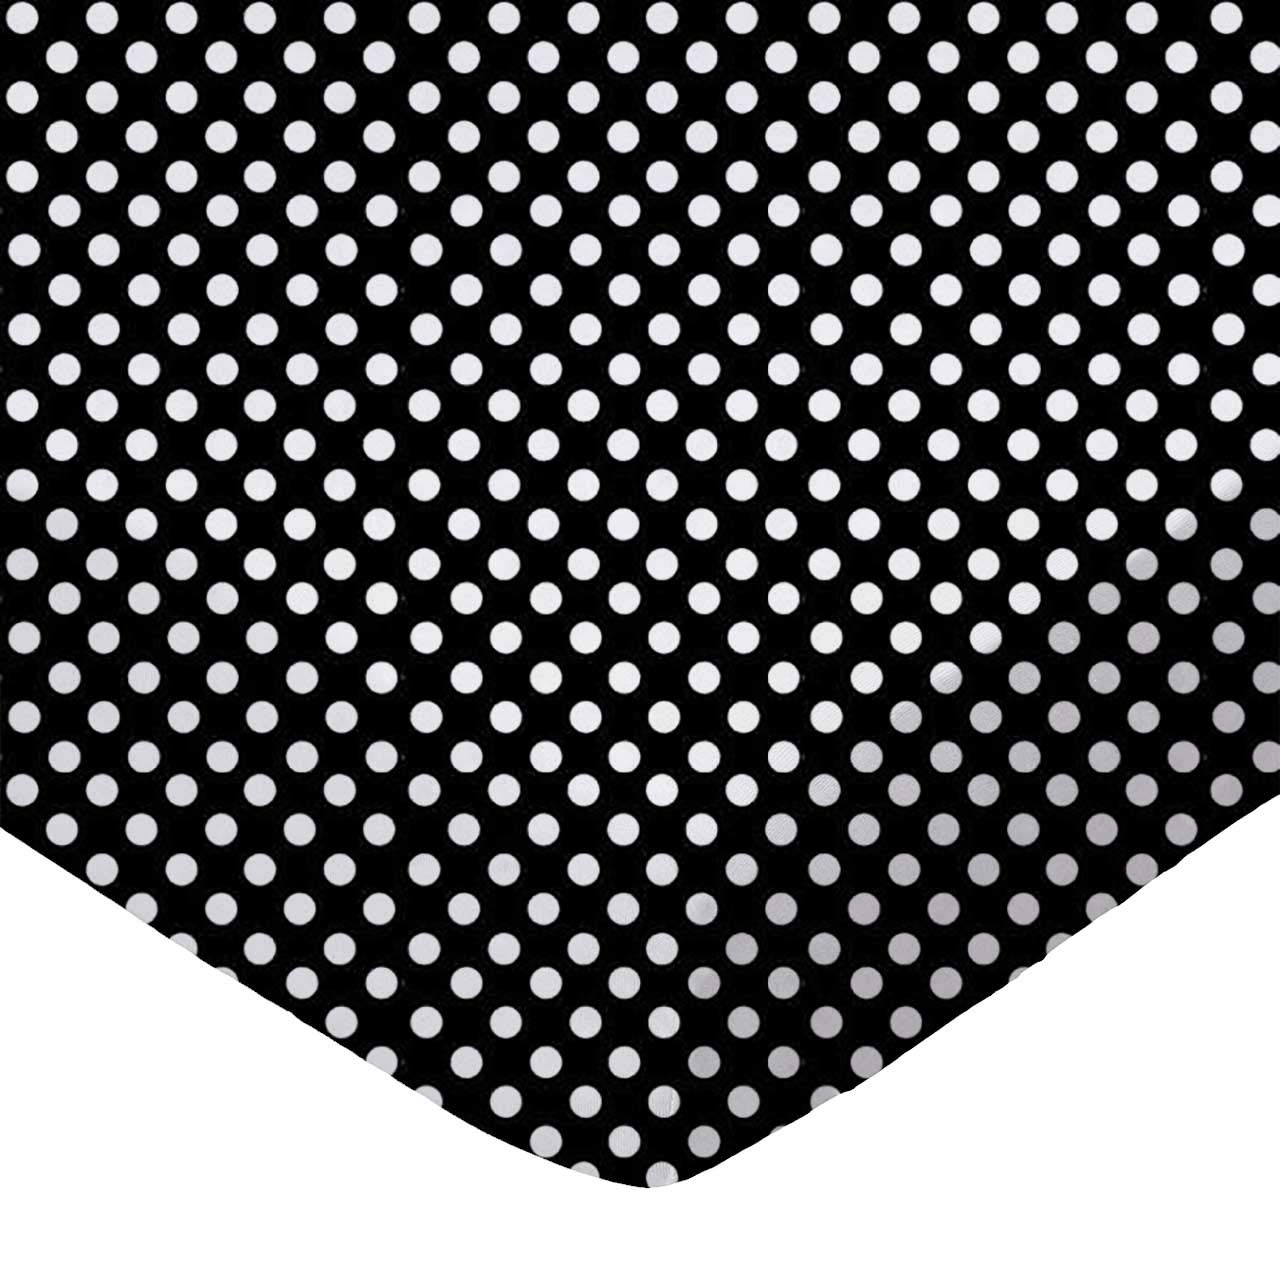 SheetWorld Fitted Cradle Sheet - Primary Polka Dots Black Woven - Made In USA by sheetworld   B003R9K3PS